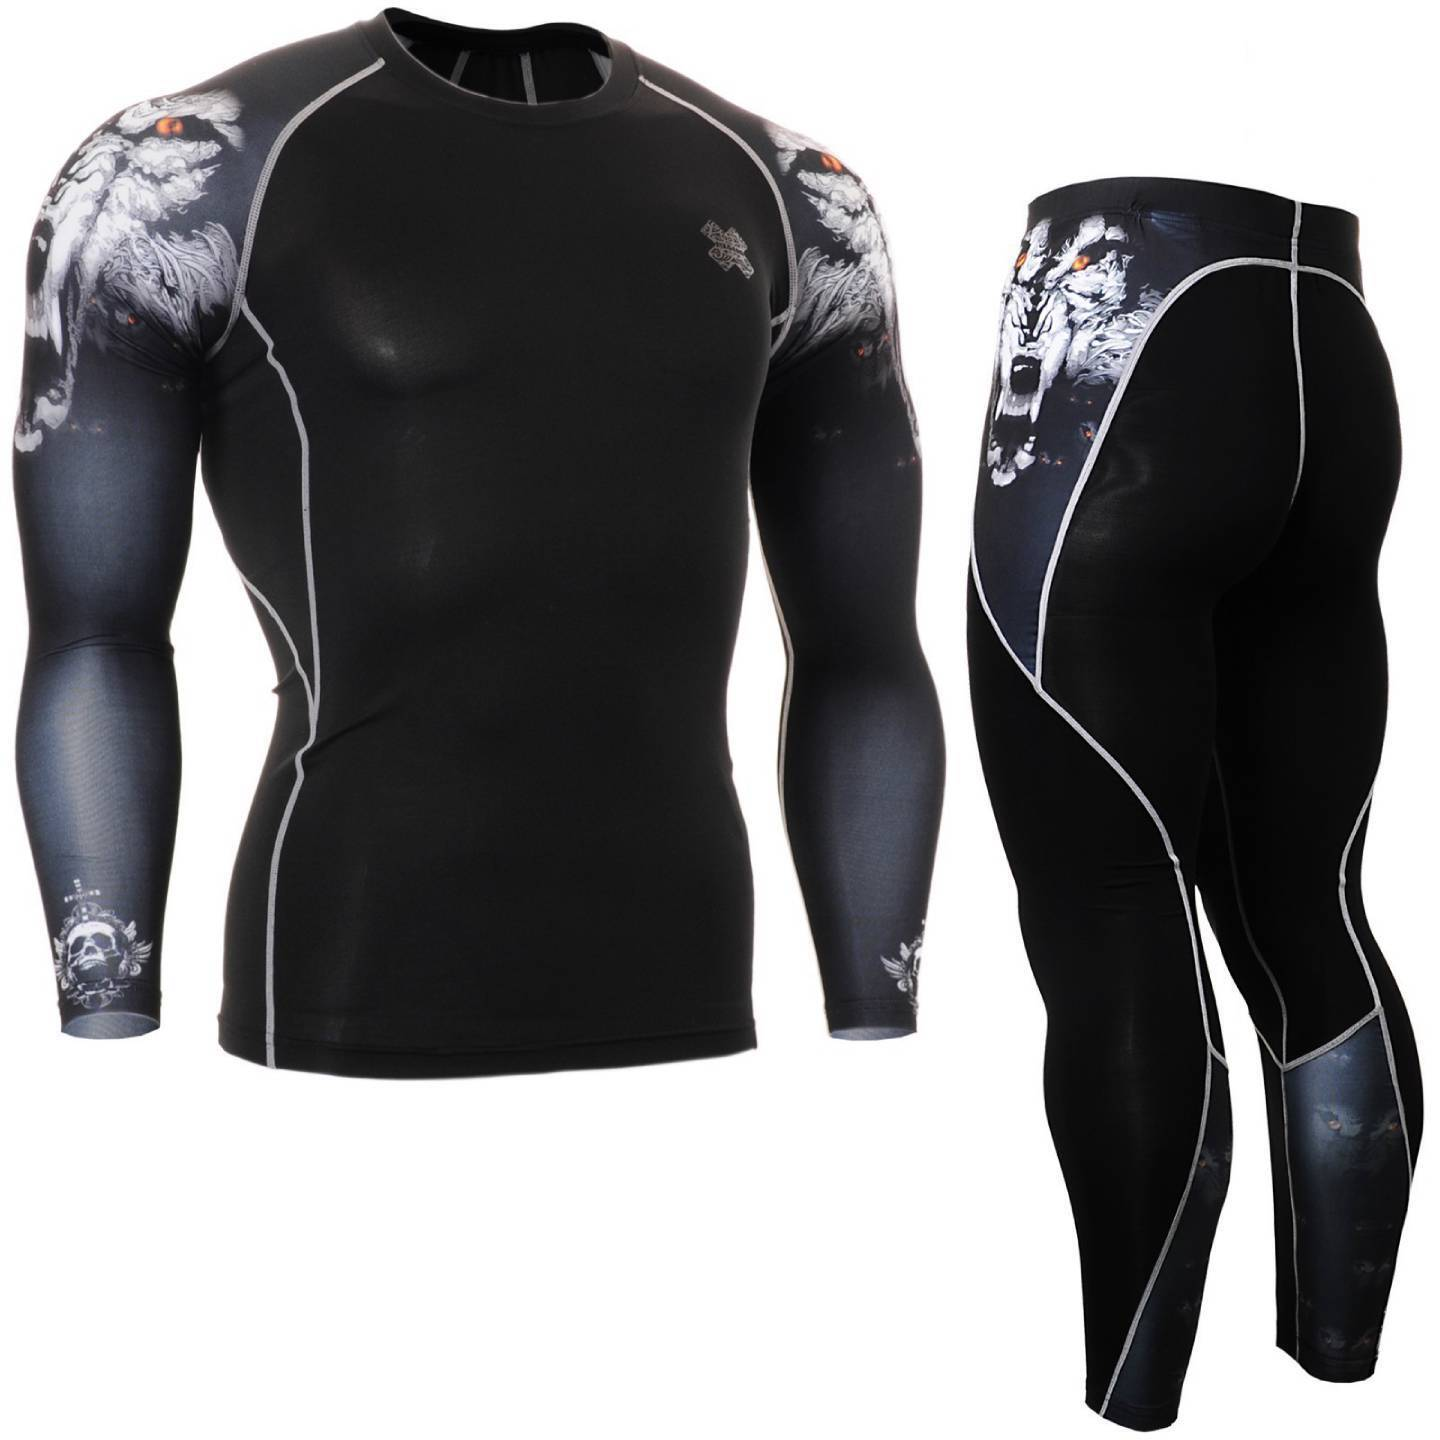 FIXGEAR CPD P2L-B18 SET Compression Shirts & Pants Skin-tight MMA Training Gym